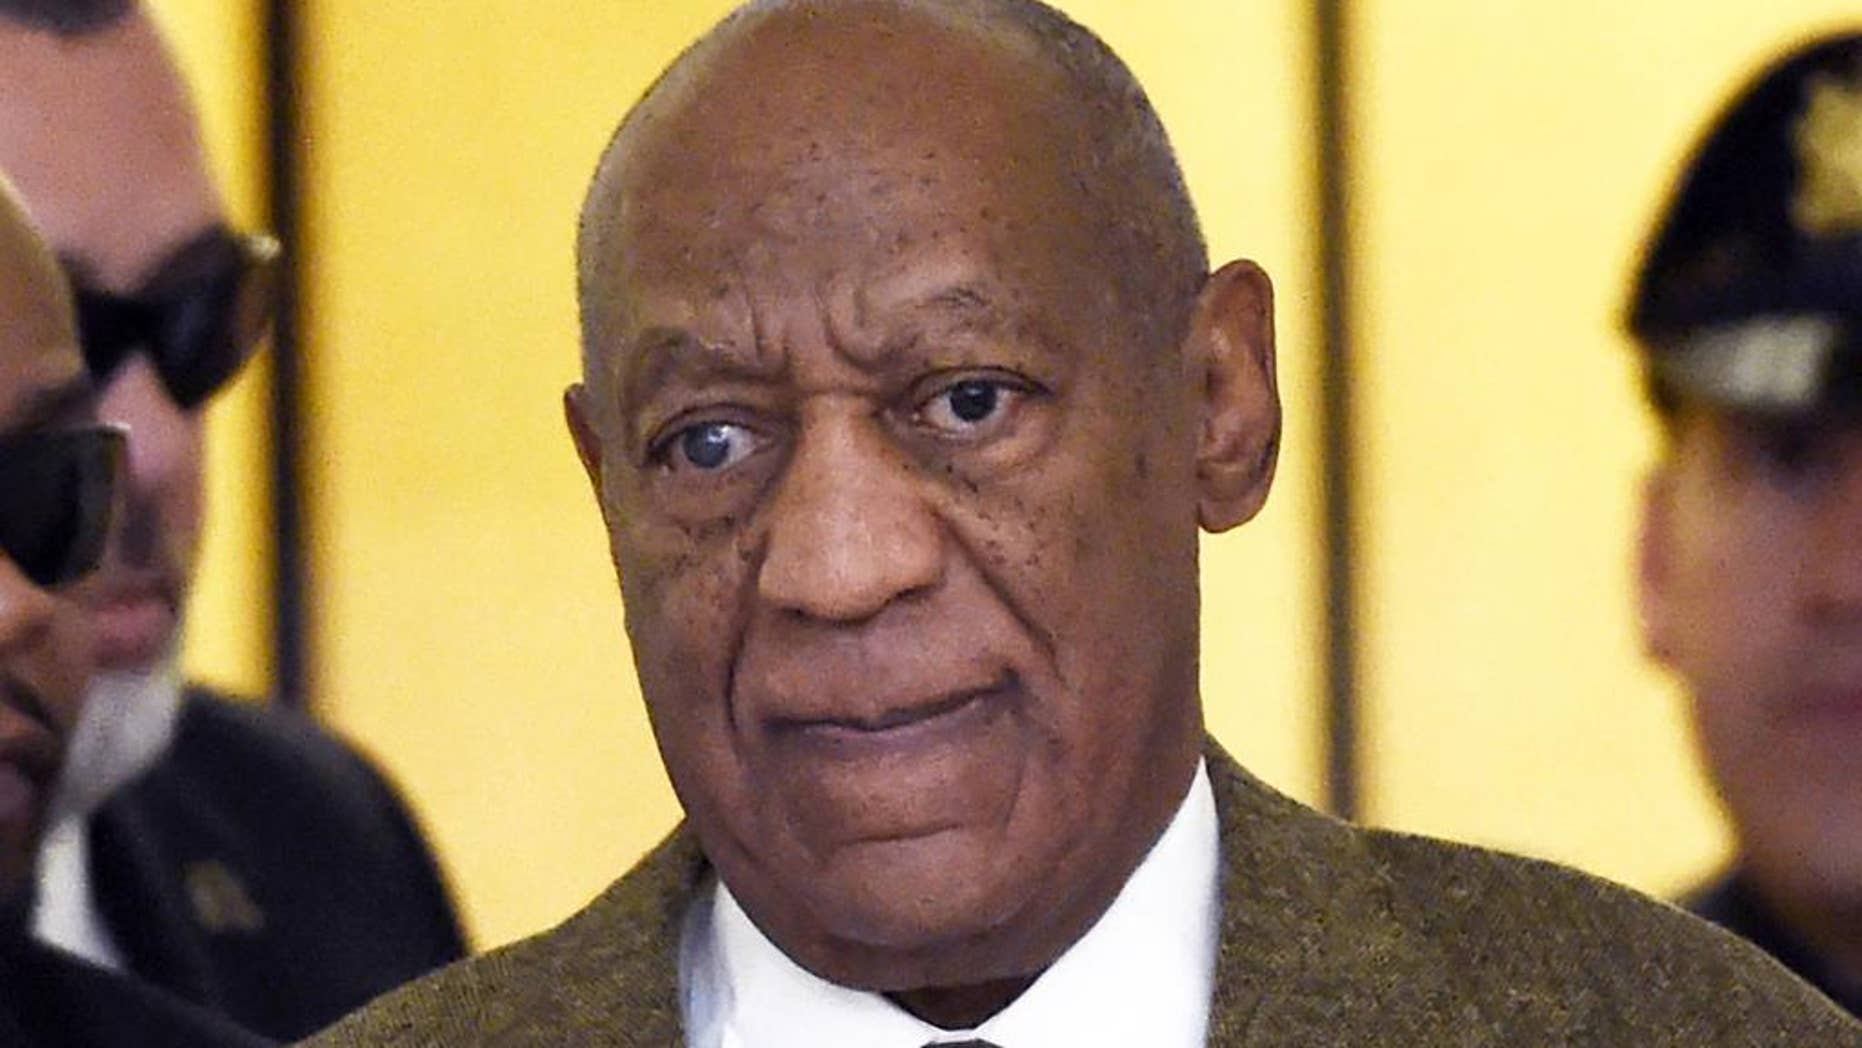 In this Feb. 2, 2016 file photo, actor and comedian Bill Cosby arrives for a court appearance in Norristown, Pa.